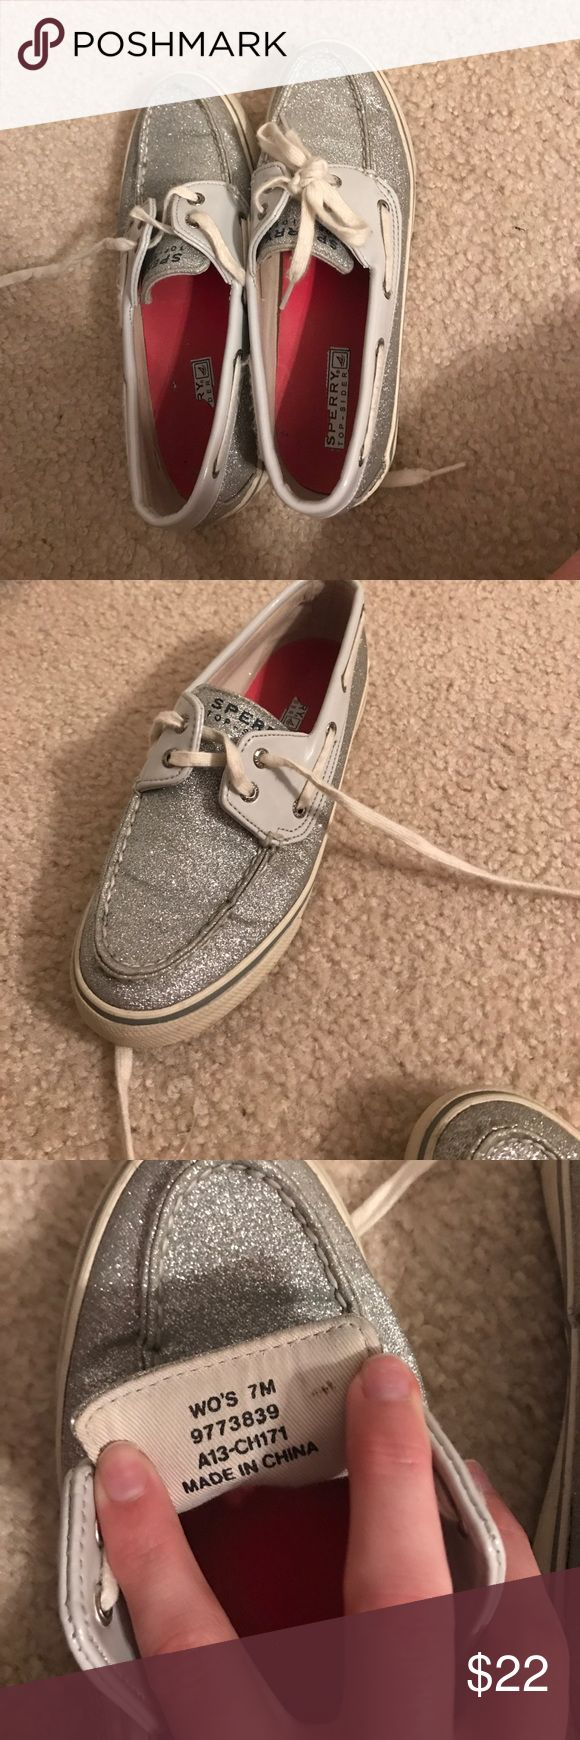 Silver Sparkle size 7 sperry topsider shoes! Worn probably a total of 10 times. These Sperry Topsider's are so cute and match with anything! They are silver sparkly with white laces. They are a size 7 in women's. Sperry Top-Sider Shoes Flats & Loafers